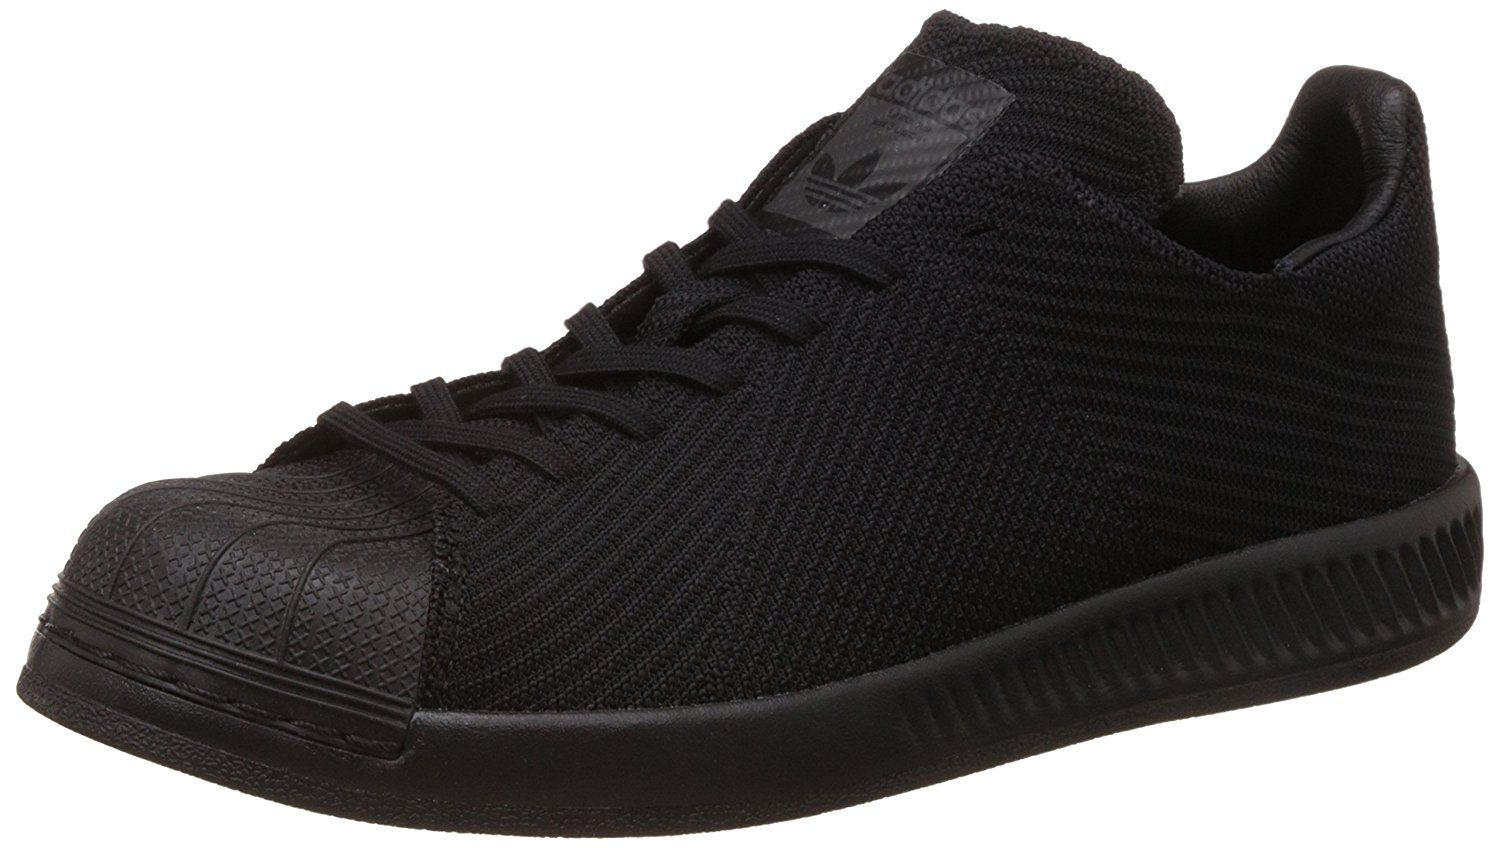 Zähler Herren Basketball Schuhe adidas Originals Superstar